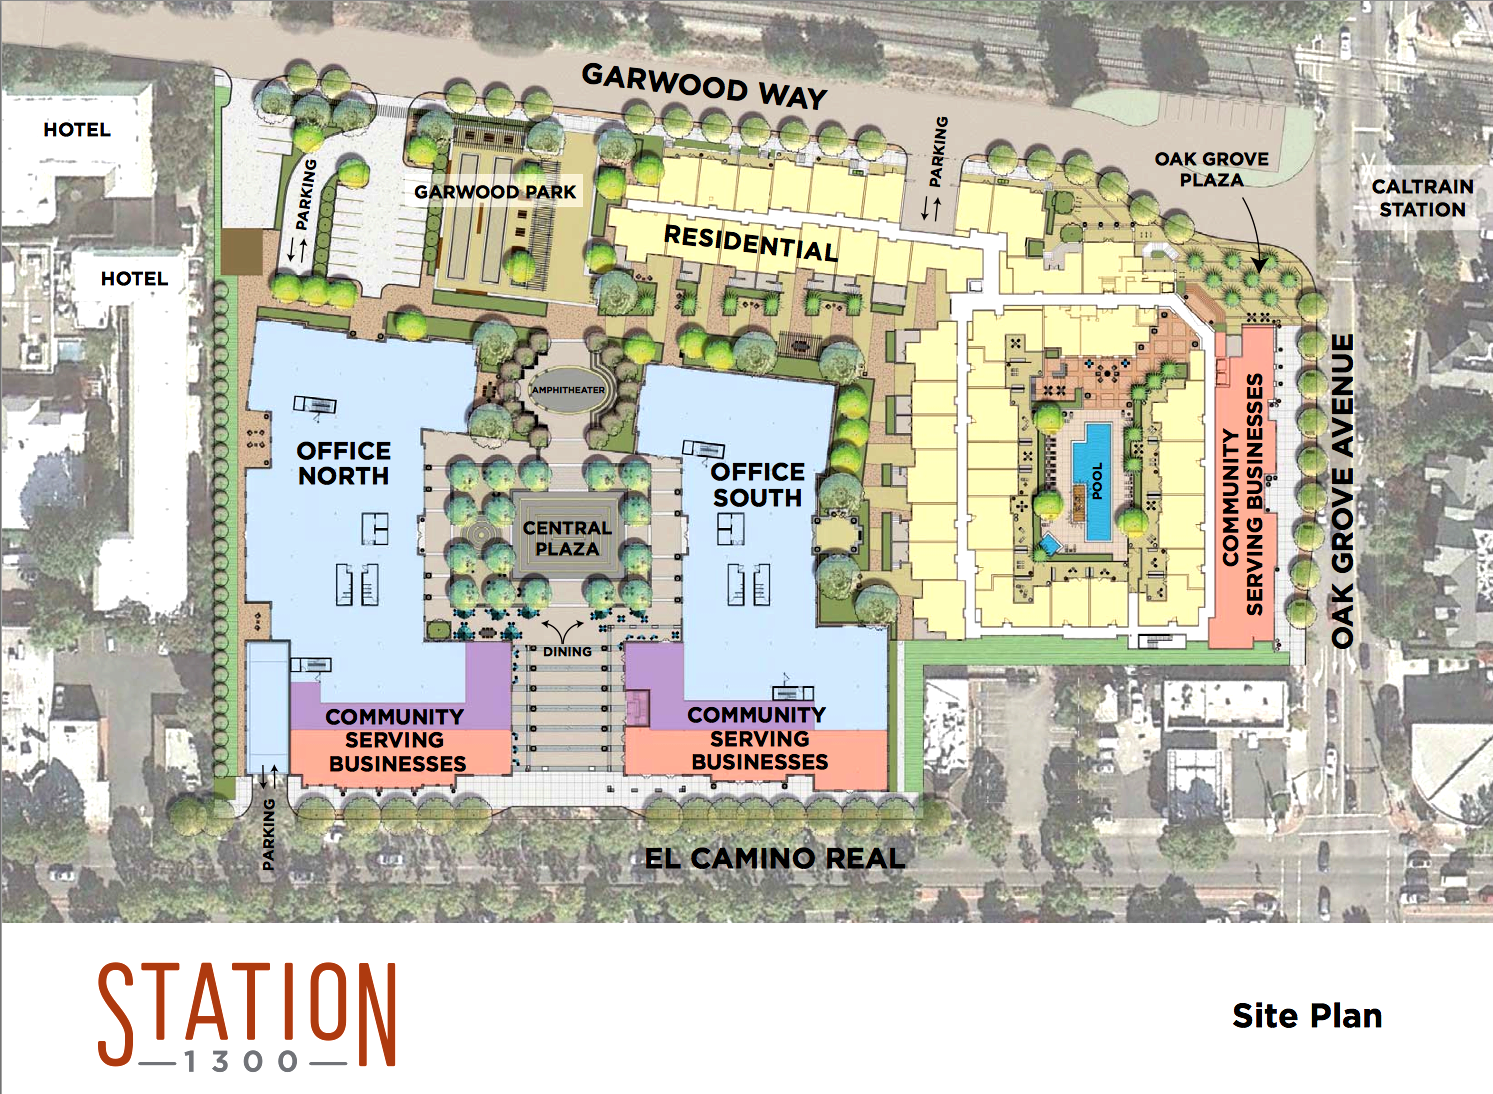 Growth cap in long range menlo park plan nearly exhausted for Hotel parking design